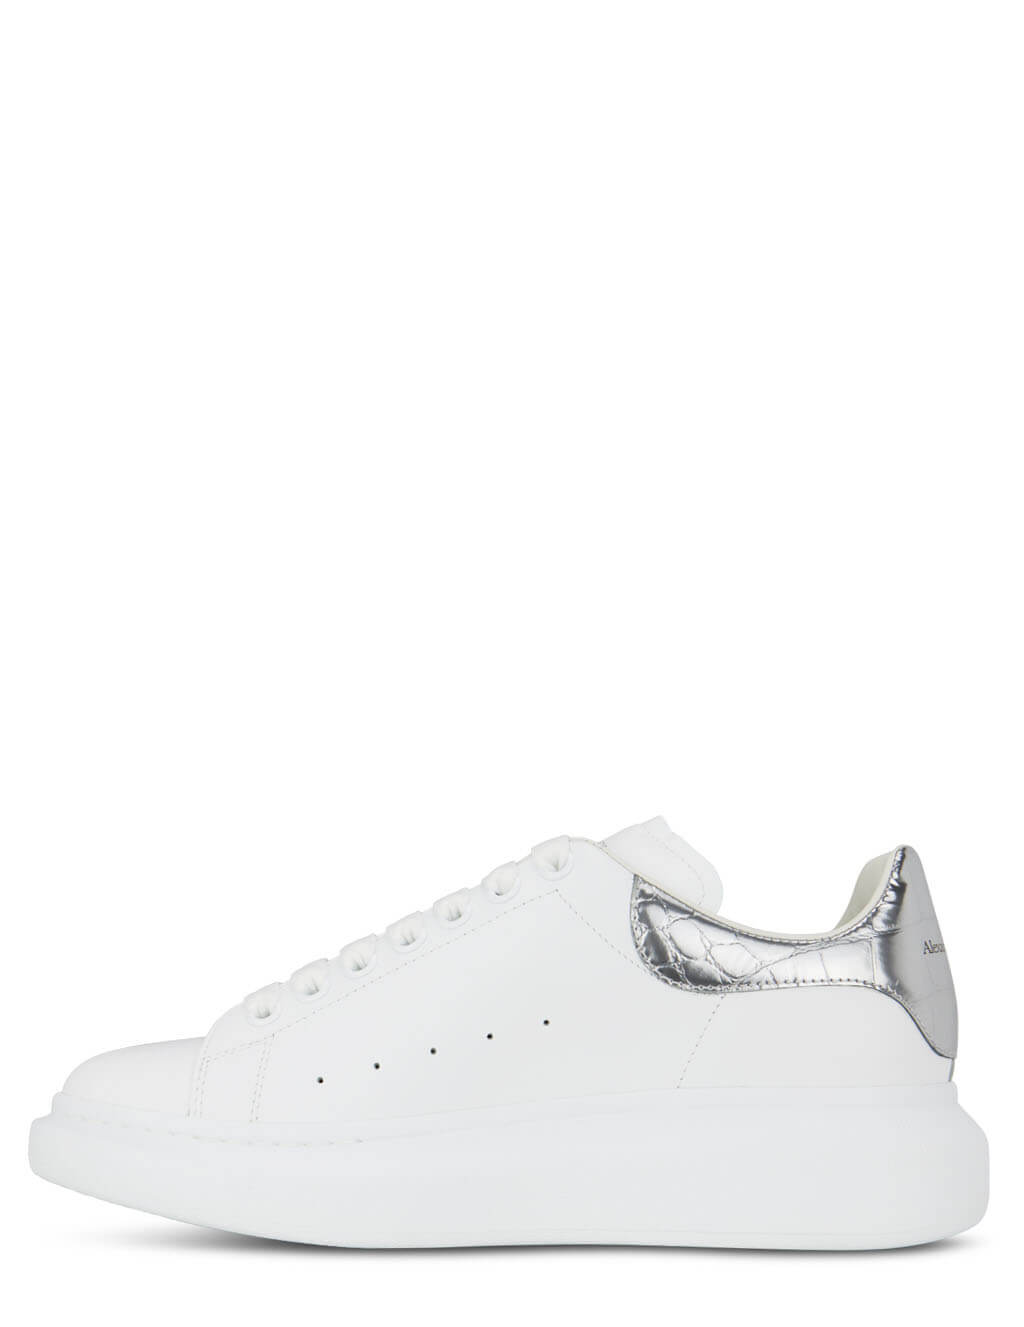 Men's Alexander McQueen Contrast Oversized Sole Sneakers in White/Silver - 625162WHYBQ9071